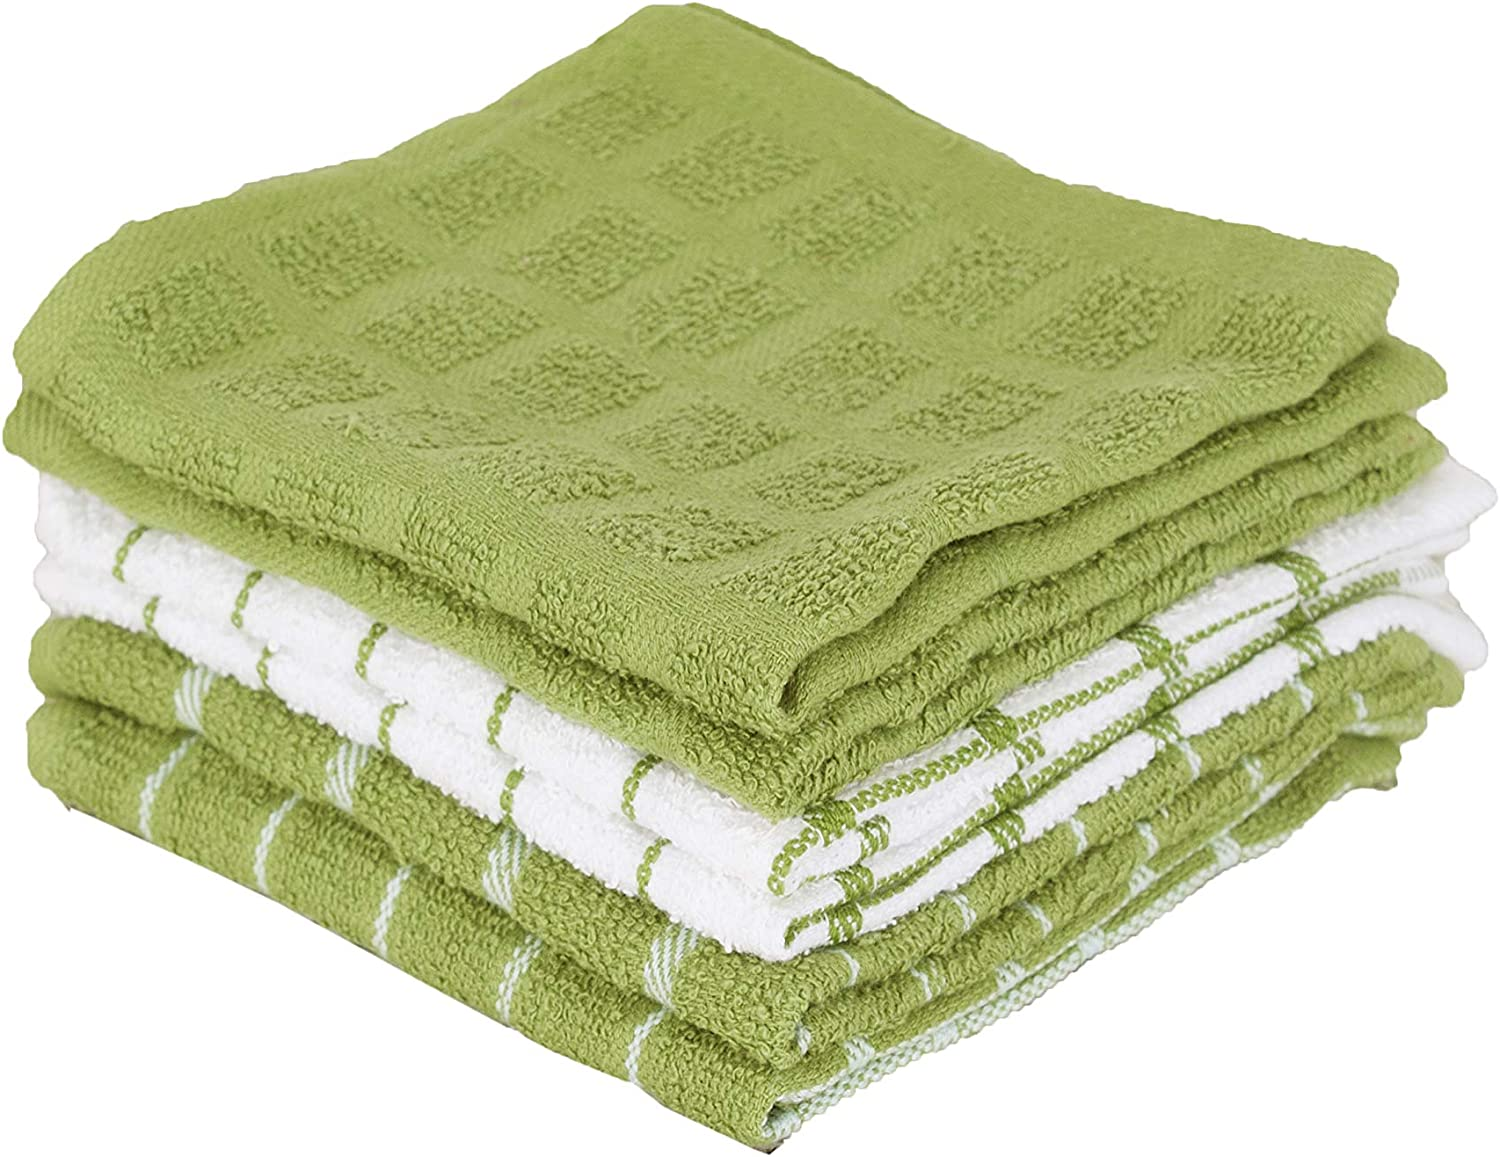 """Ritz 100% Terry Cotton, Highly Absorbent Dish Cloth Set, 12"""" x 12"""", 6-Pack, Cactus Green"""